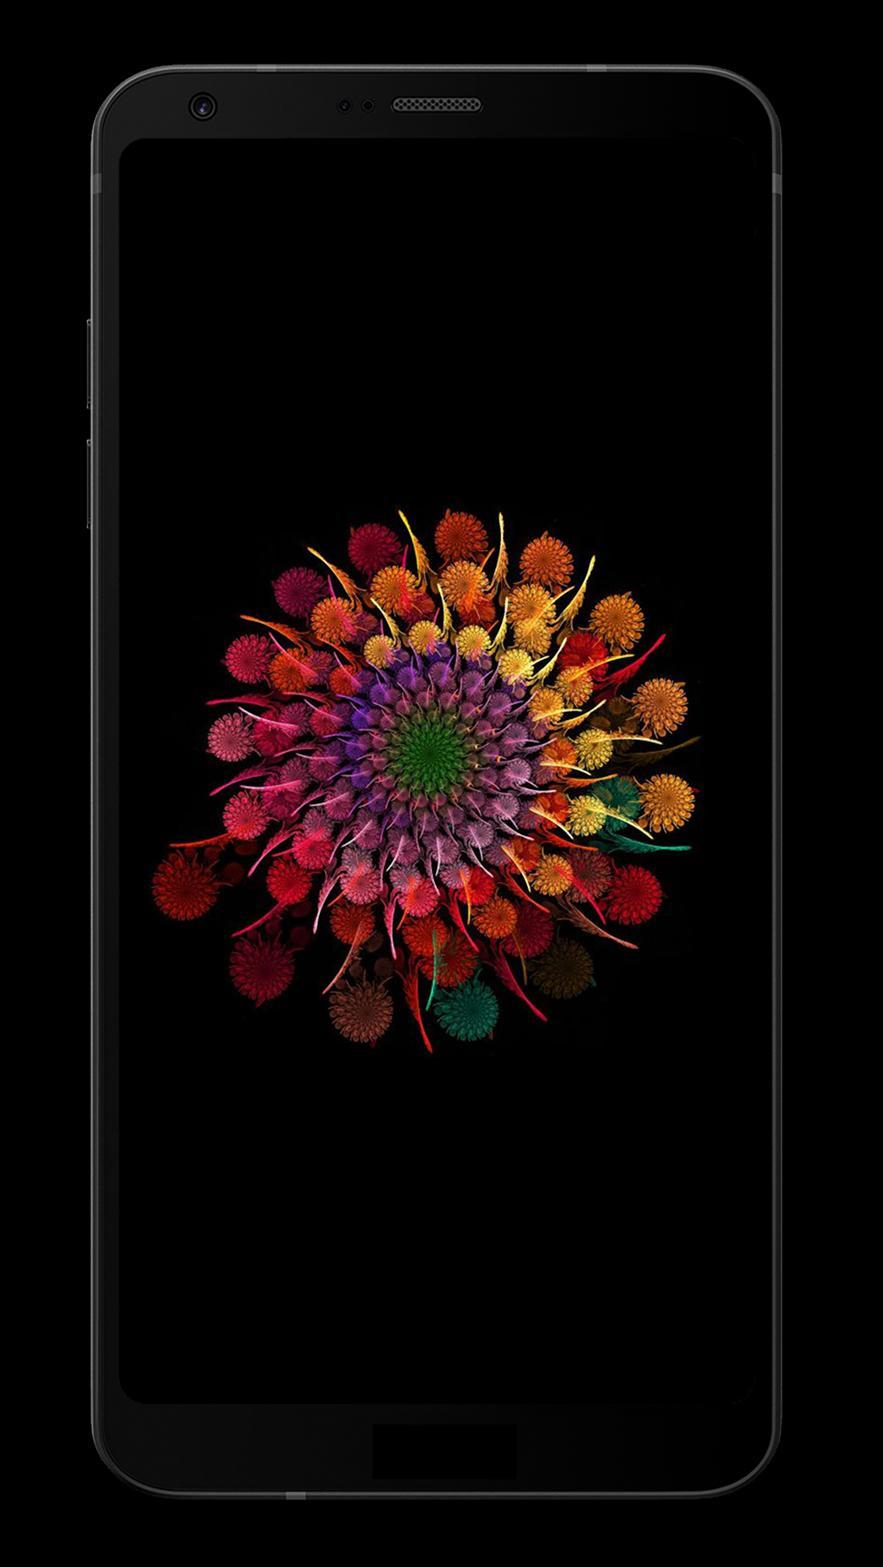 Dark 2k Wallpapers For Android Apk Download